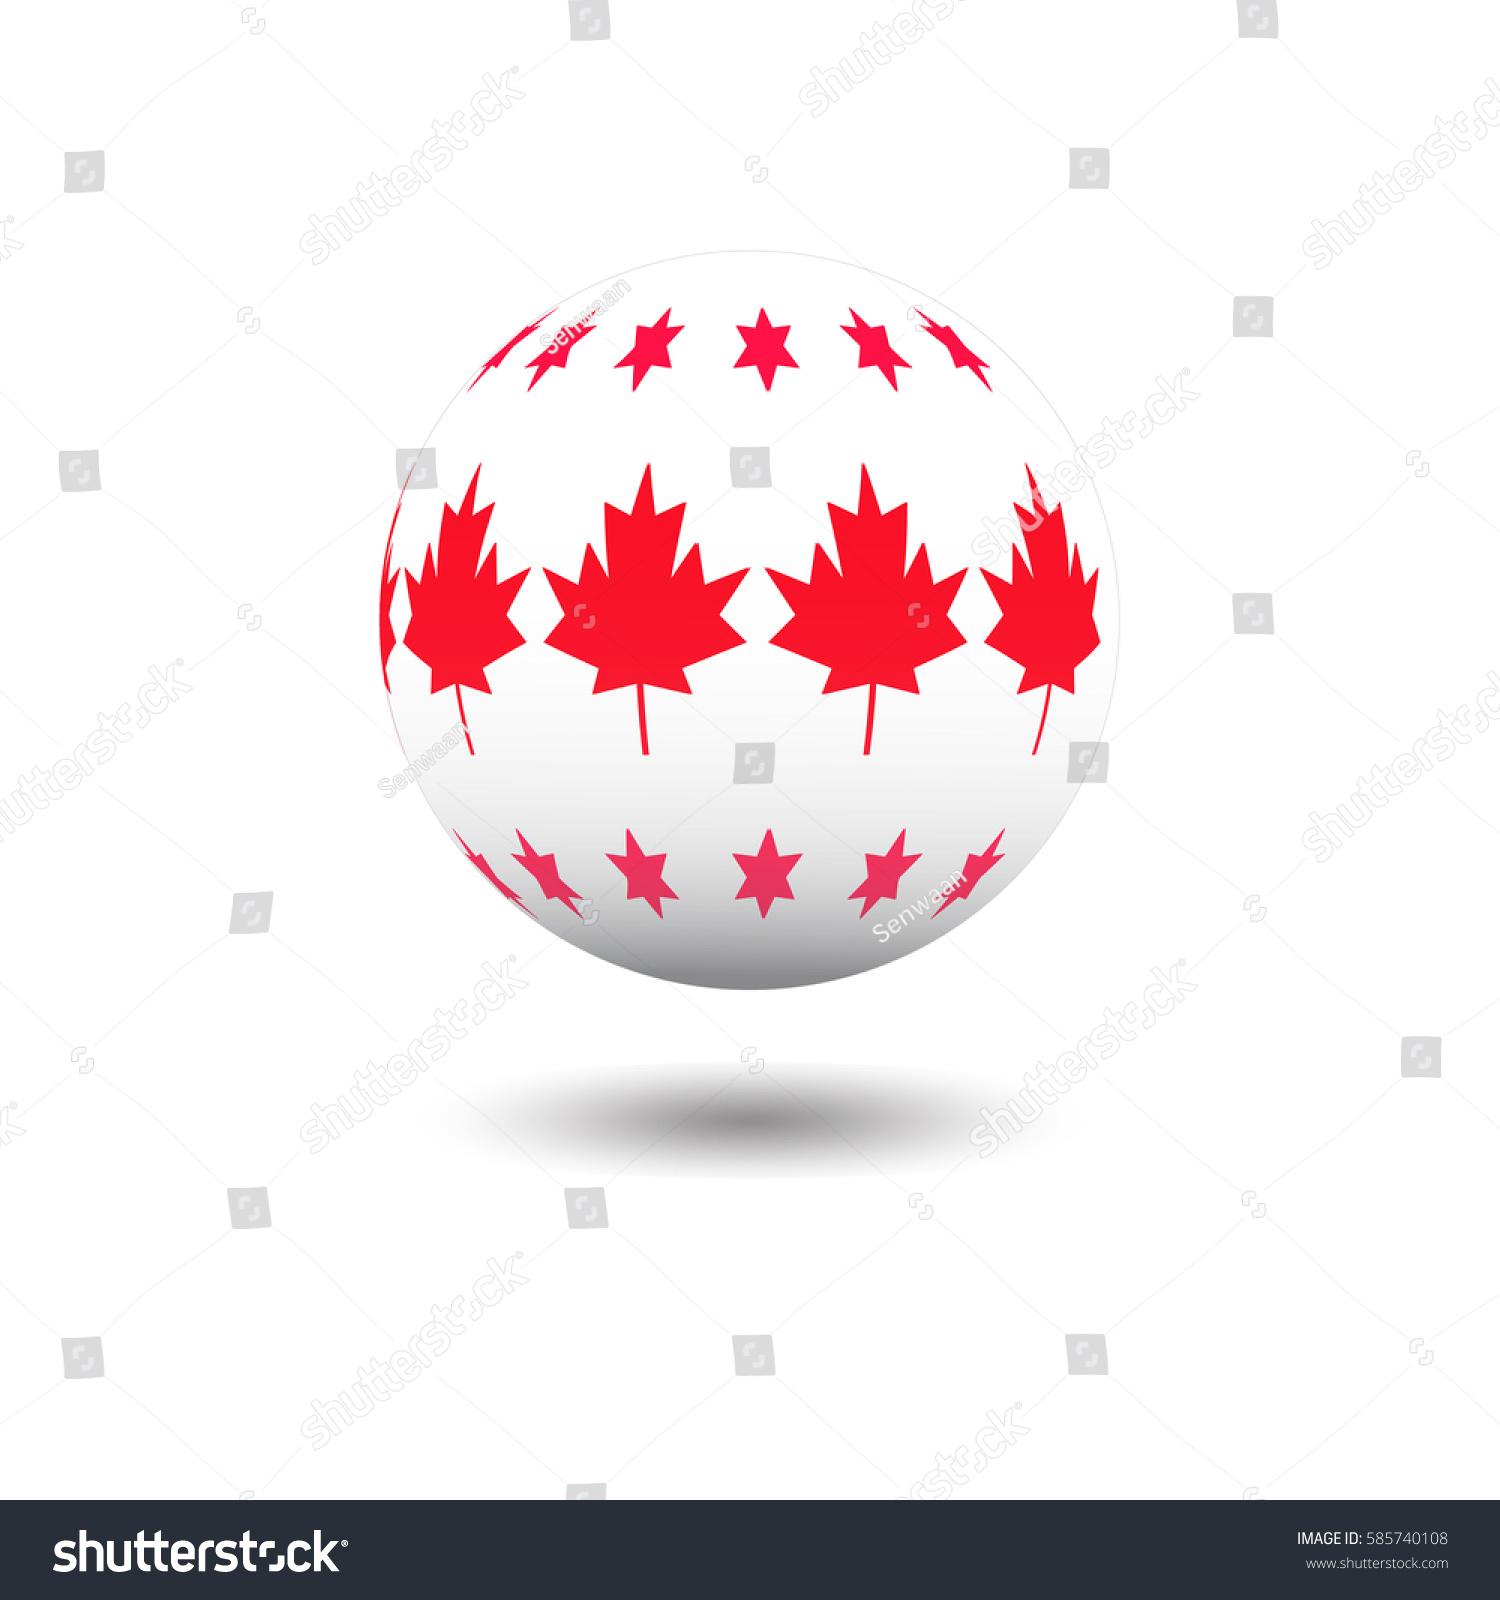 Abstract Soccer Ball Star Maple Leaf Stock Vector (Royalty Free ...